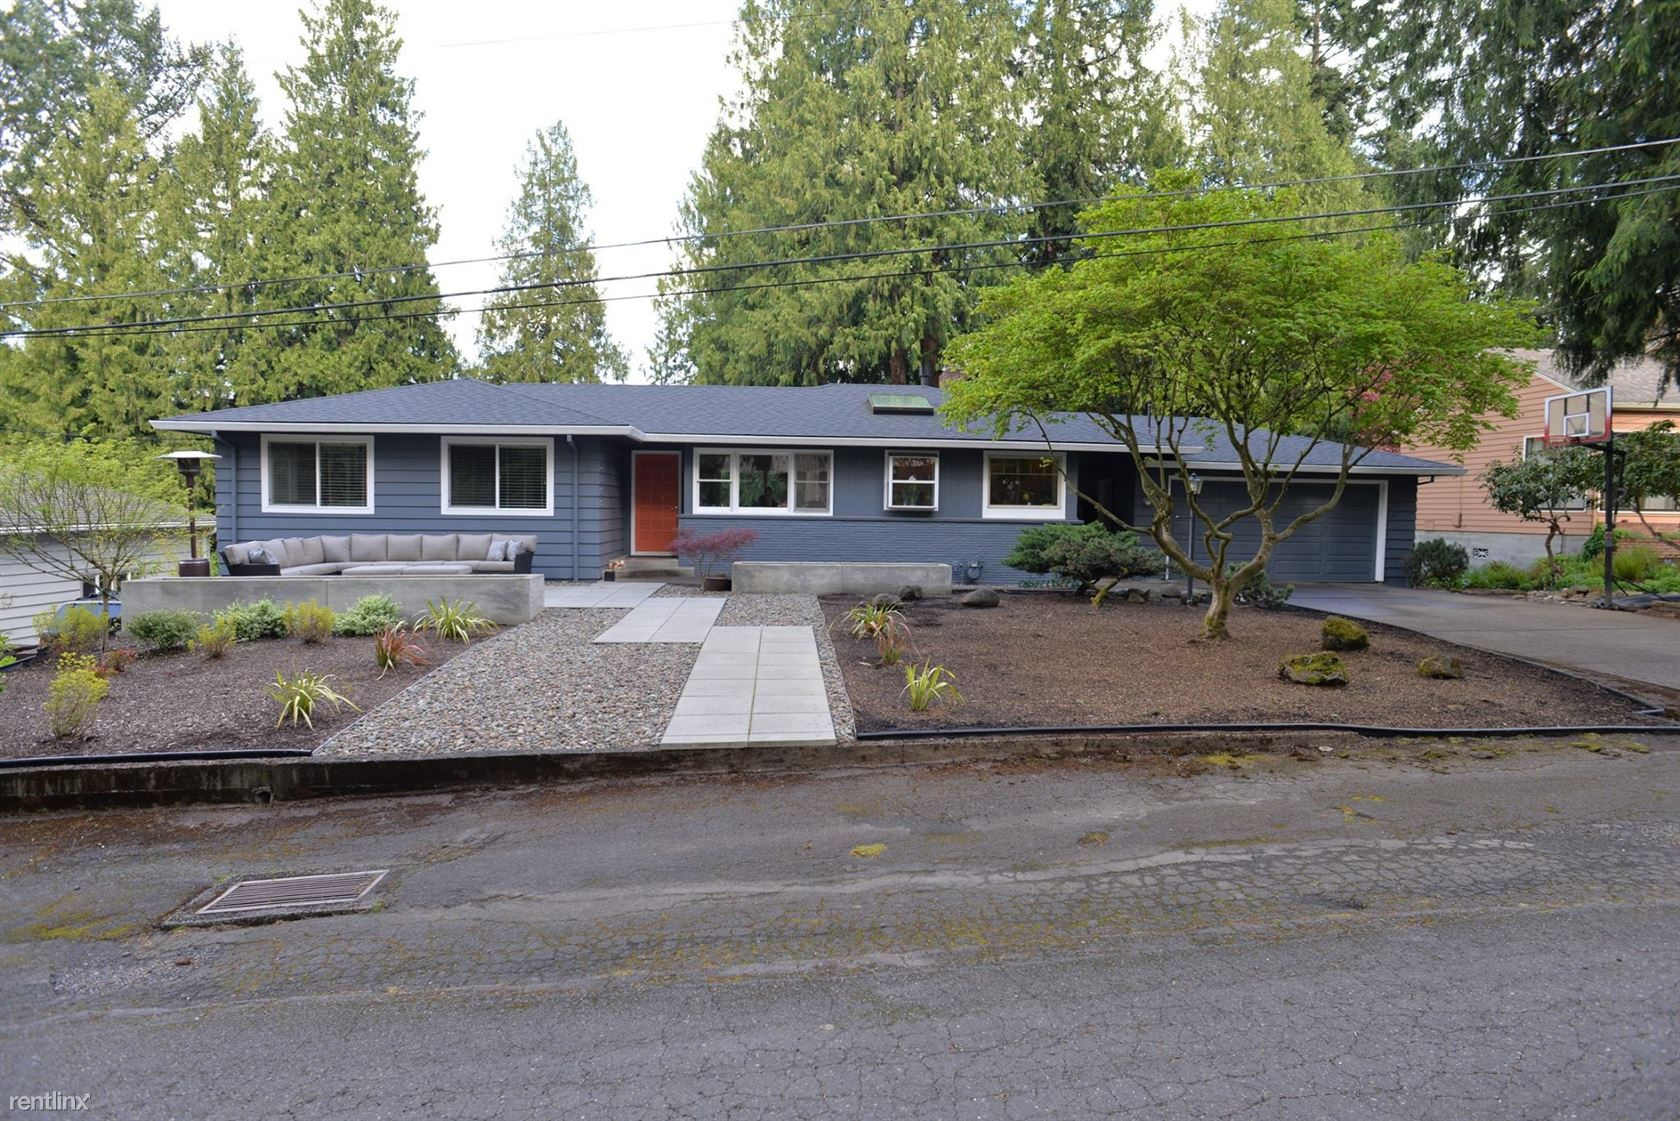 6850 SW 68th Ave, Portland, OR - $3,200 USD/ month